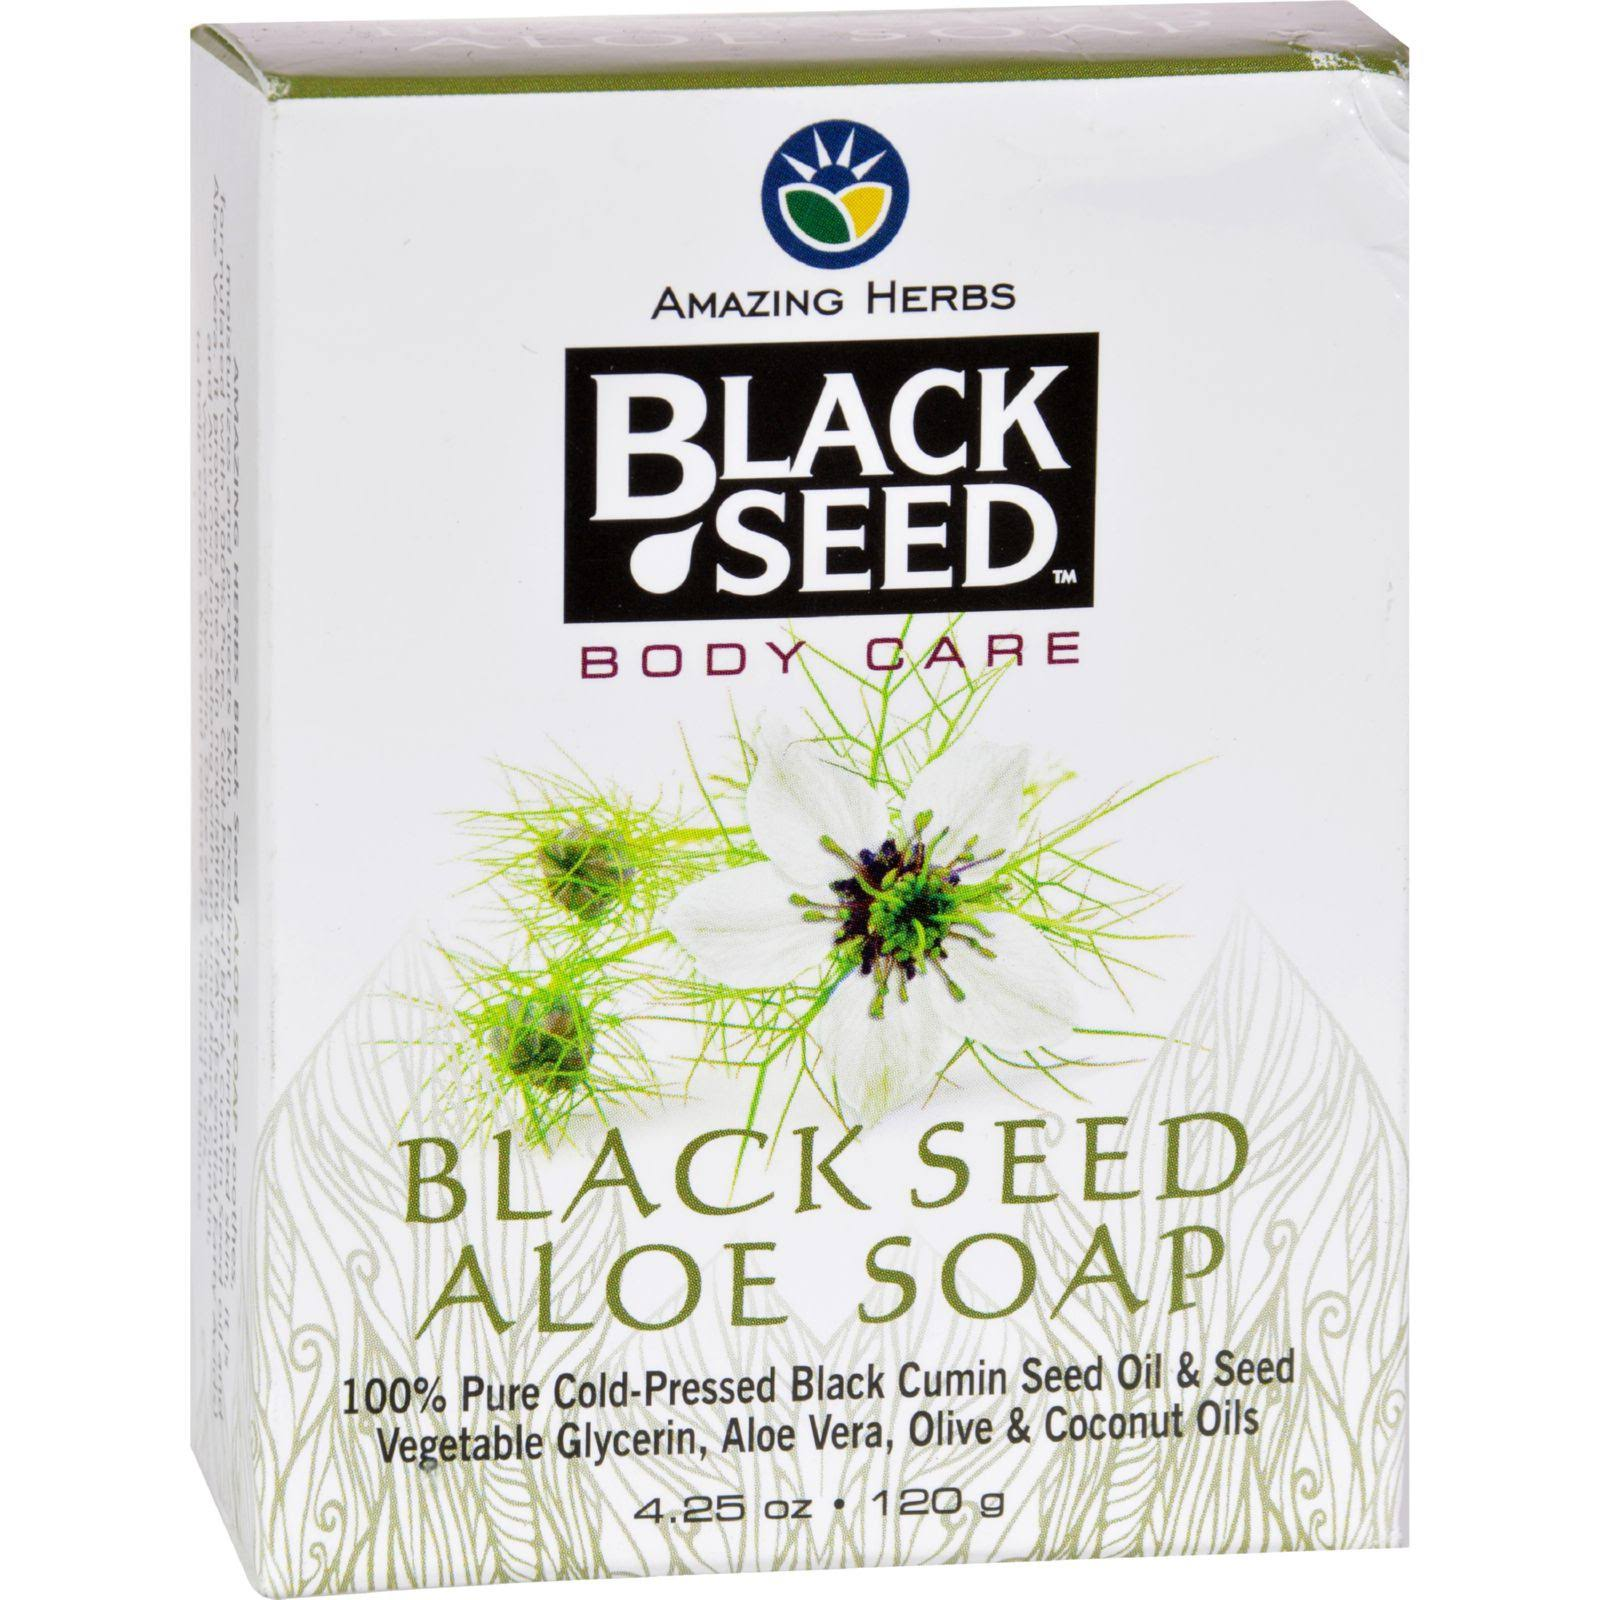 Amazing Herb Black Seed Aloe Soap - 120g